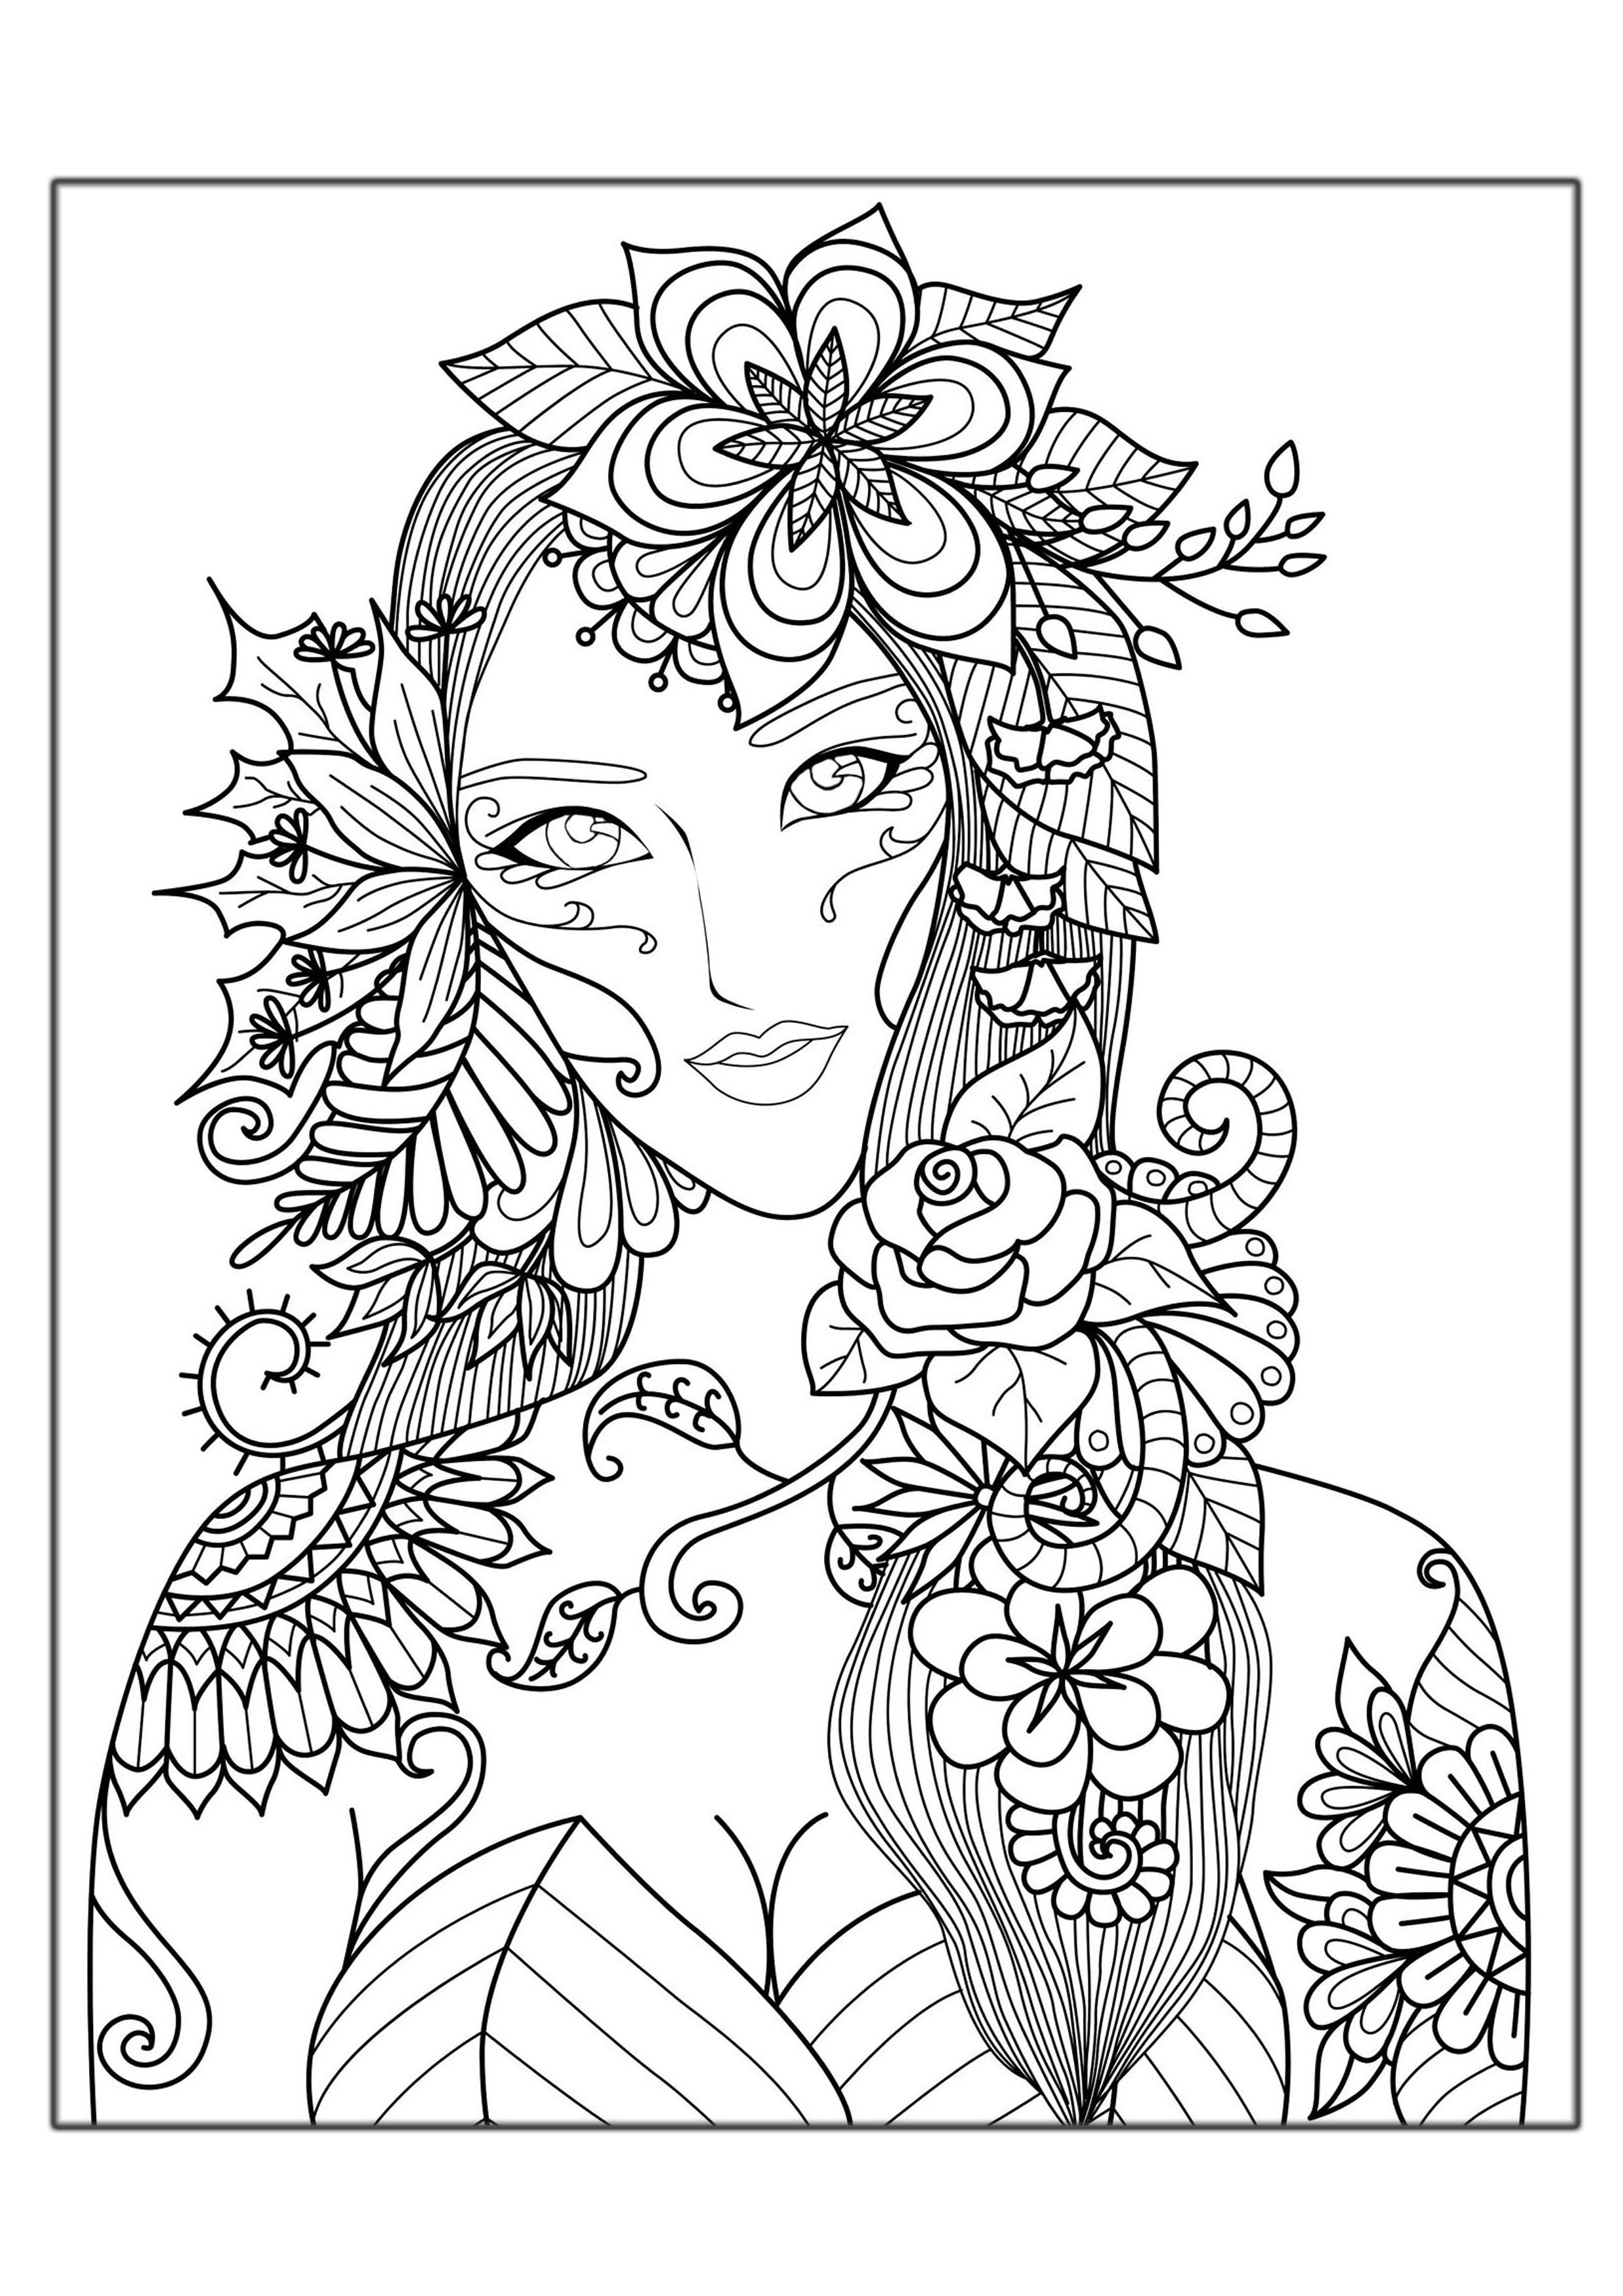 Detailed Coloring Pages For Adults Amusing Woman Flowers  Zen And Anti Stress  Coloring Pages For Adults .